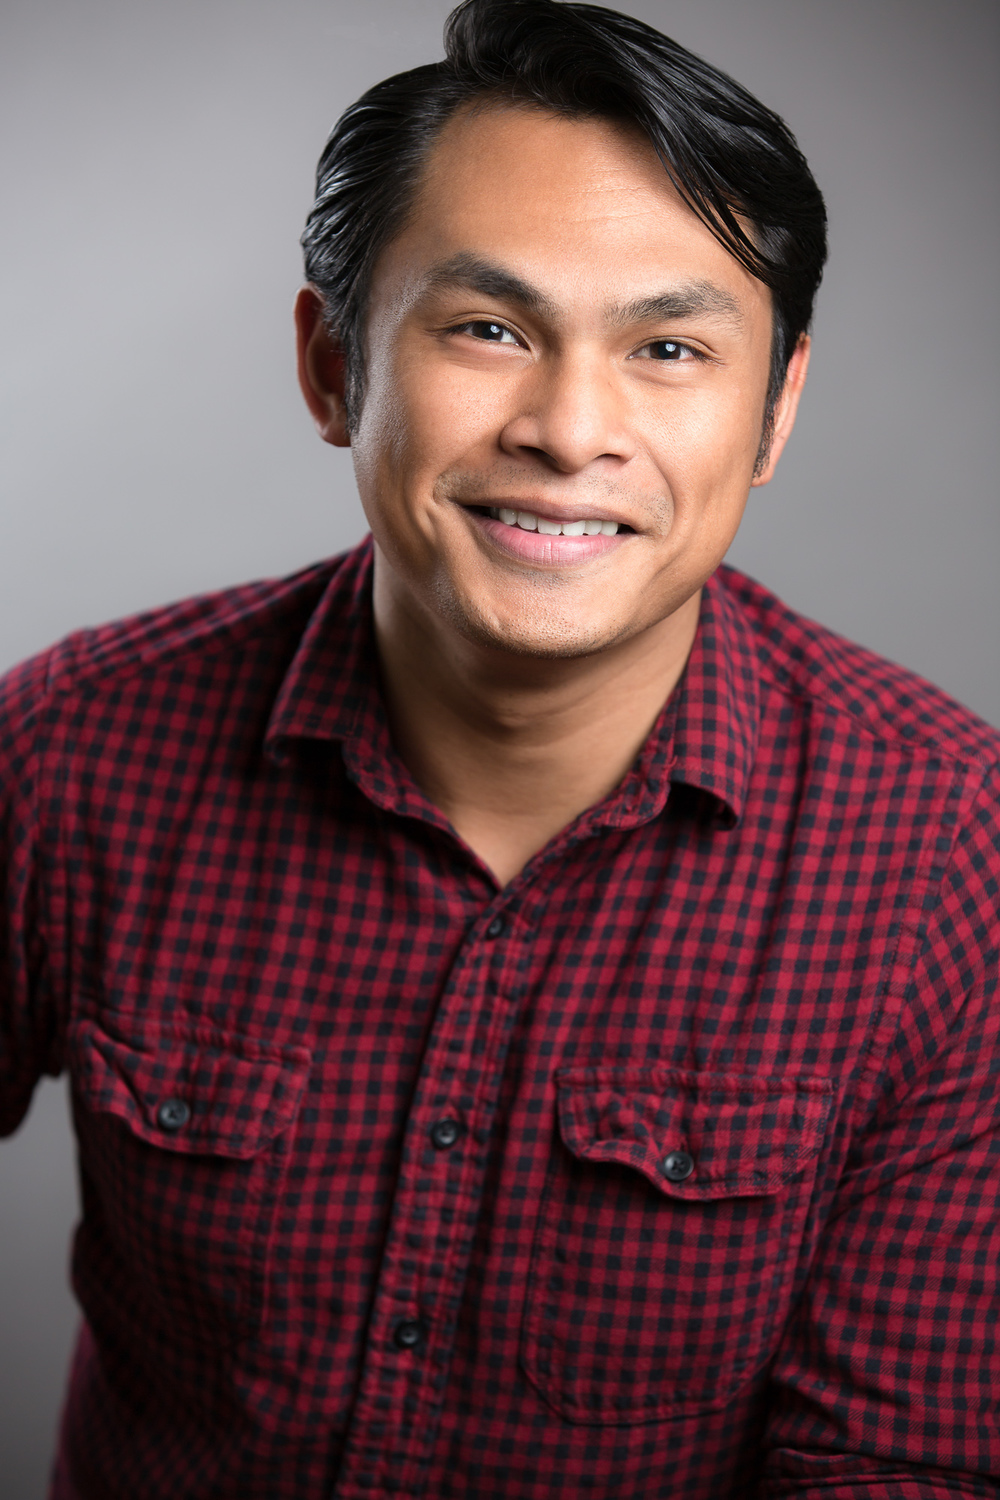 Devo Uy Headshots-143-Edit.jpg